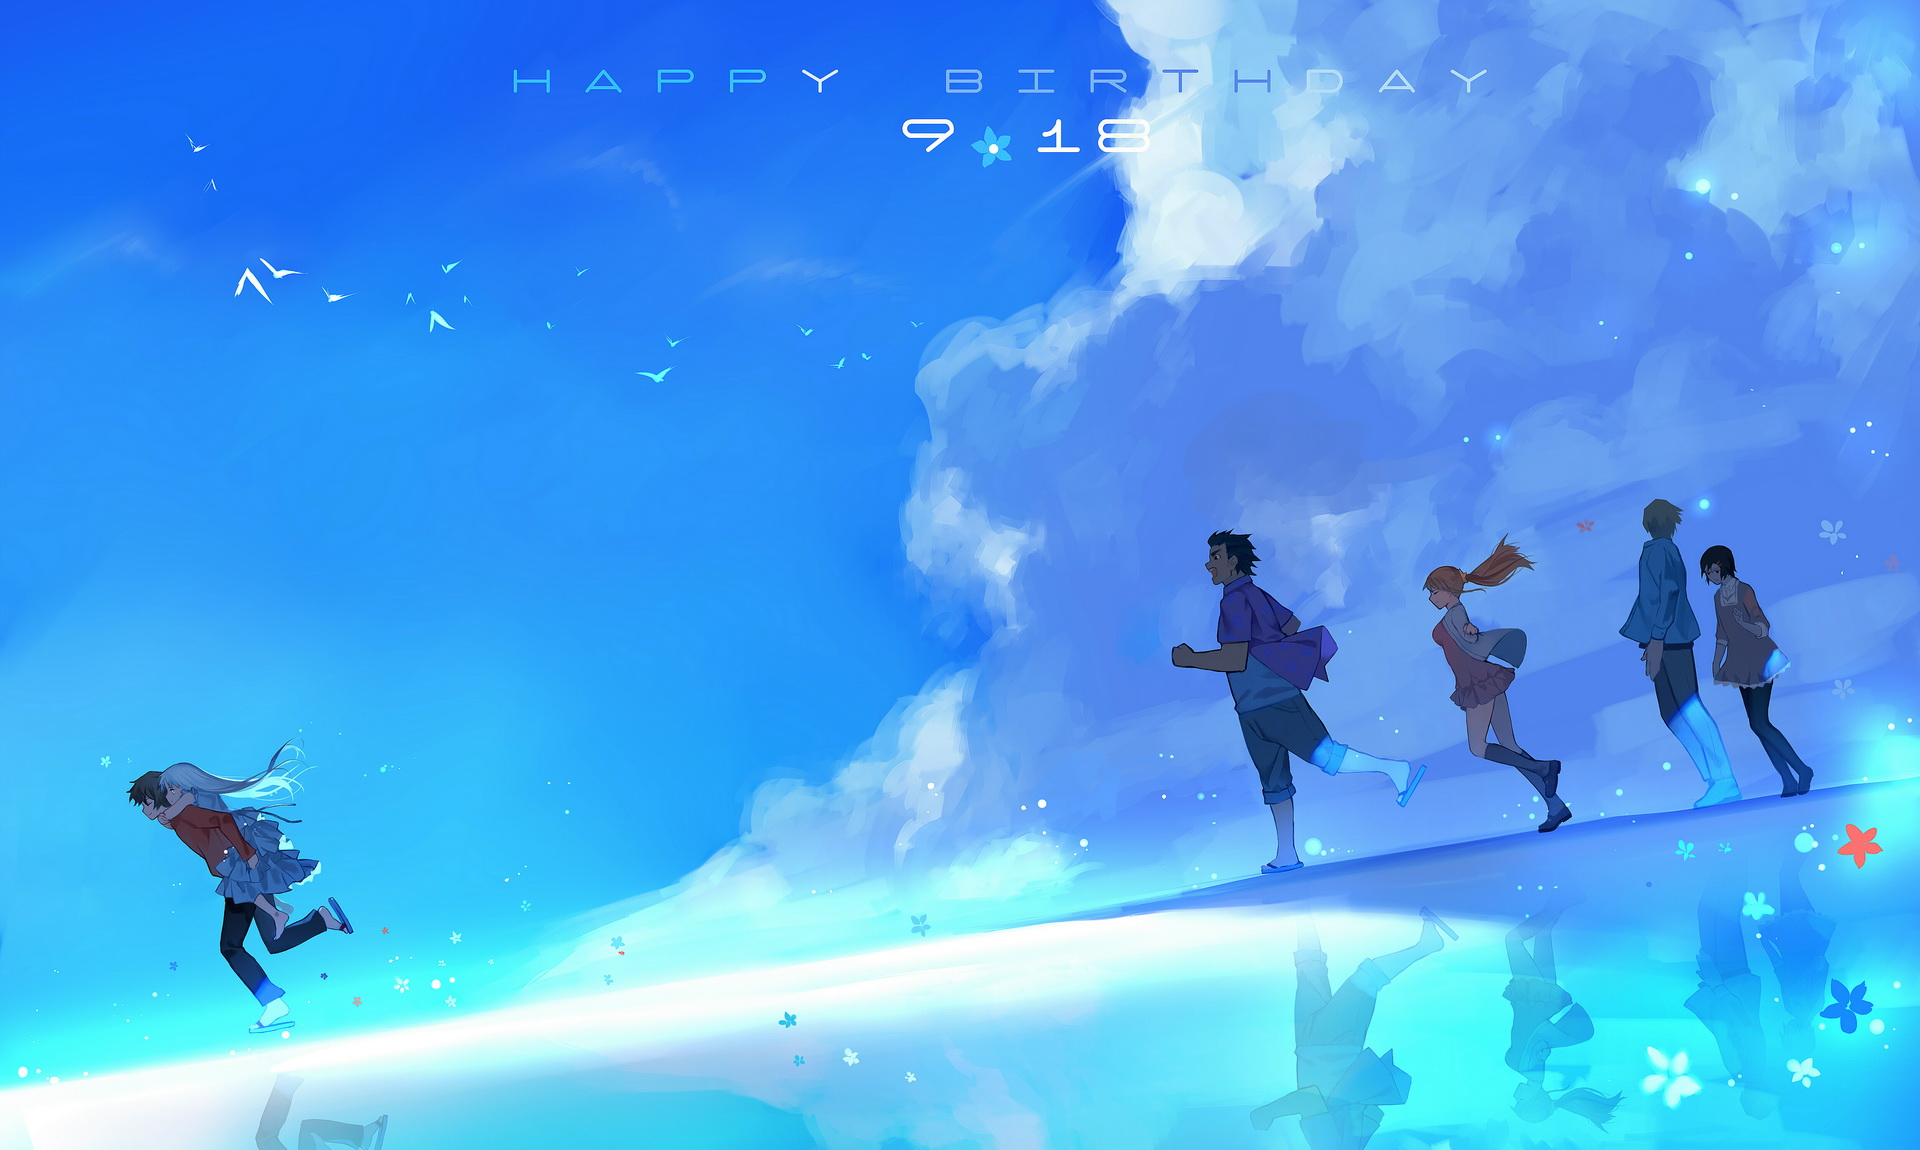 19 Anohana HD Wallpapers | Backgrounds - Wallpaper Abyss